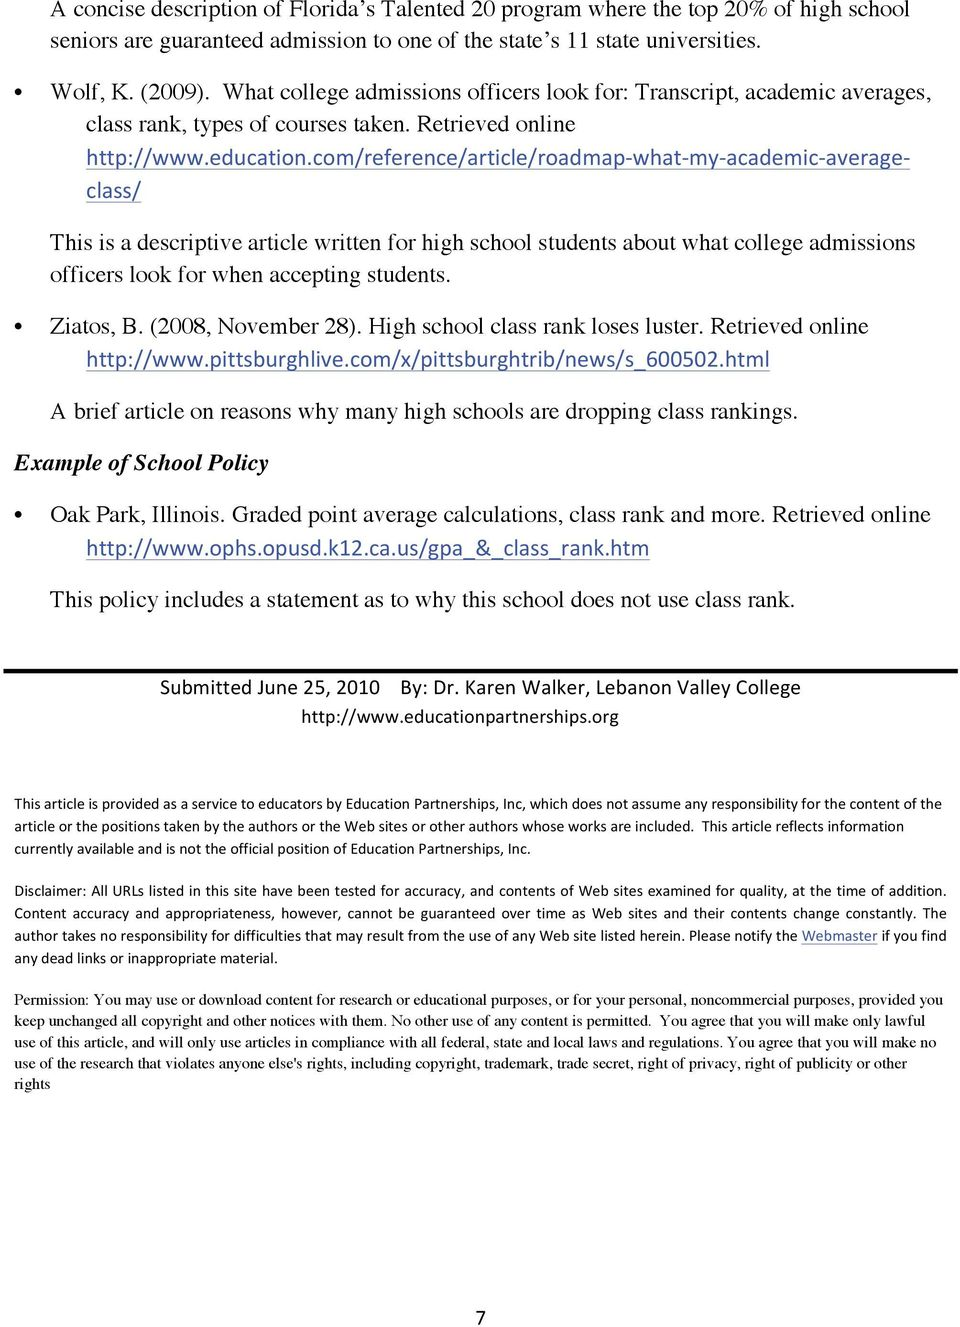 Retrieved online This is a descriptive article written for high school students about what college admissions officers look for when accepting students. Ziatos, B. (2008, November 28).